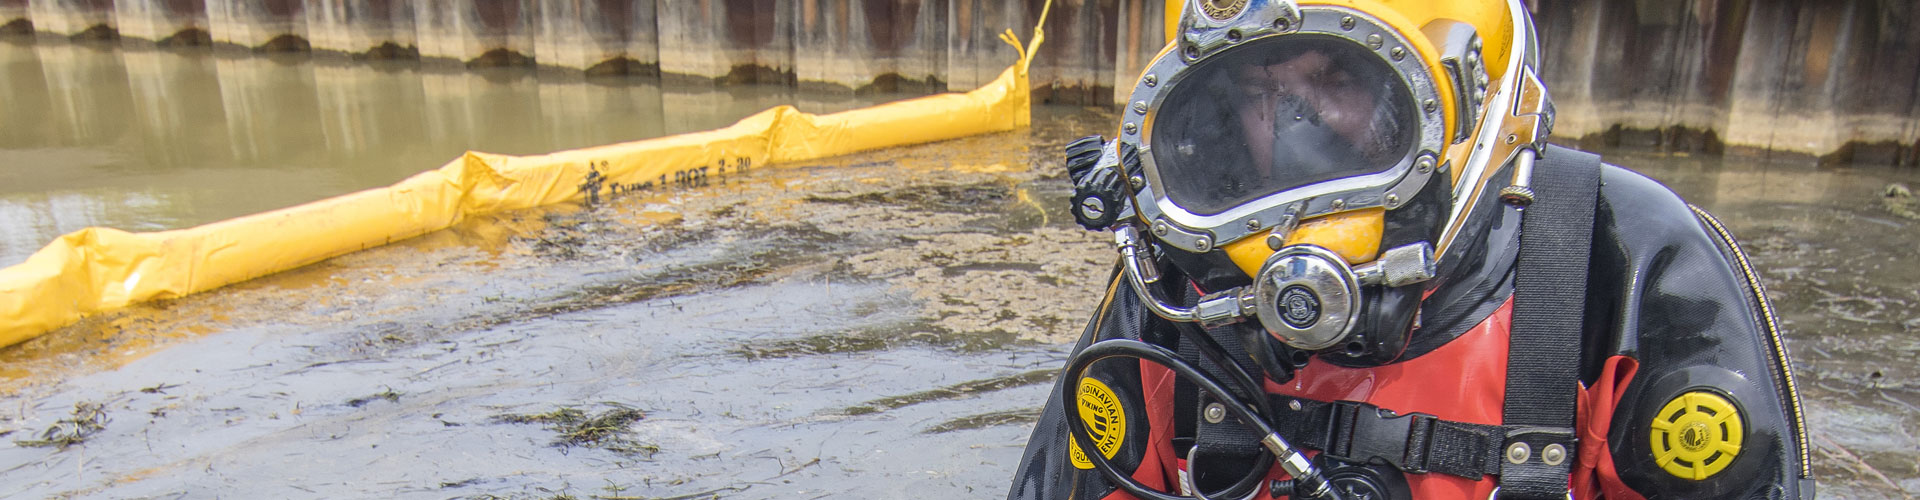 diver assisted micro dredging, environmental dredging, diver dredging, underwater environmental remediations